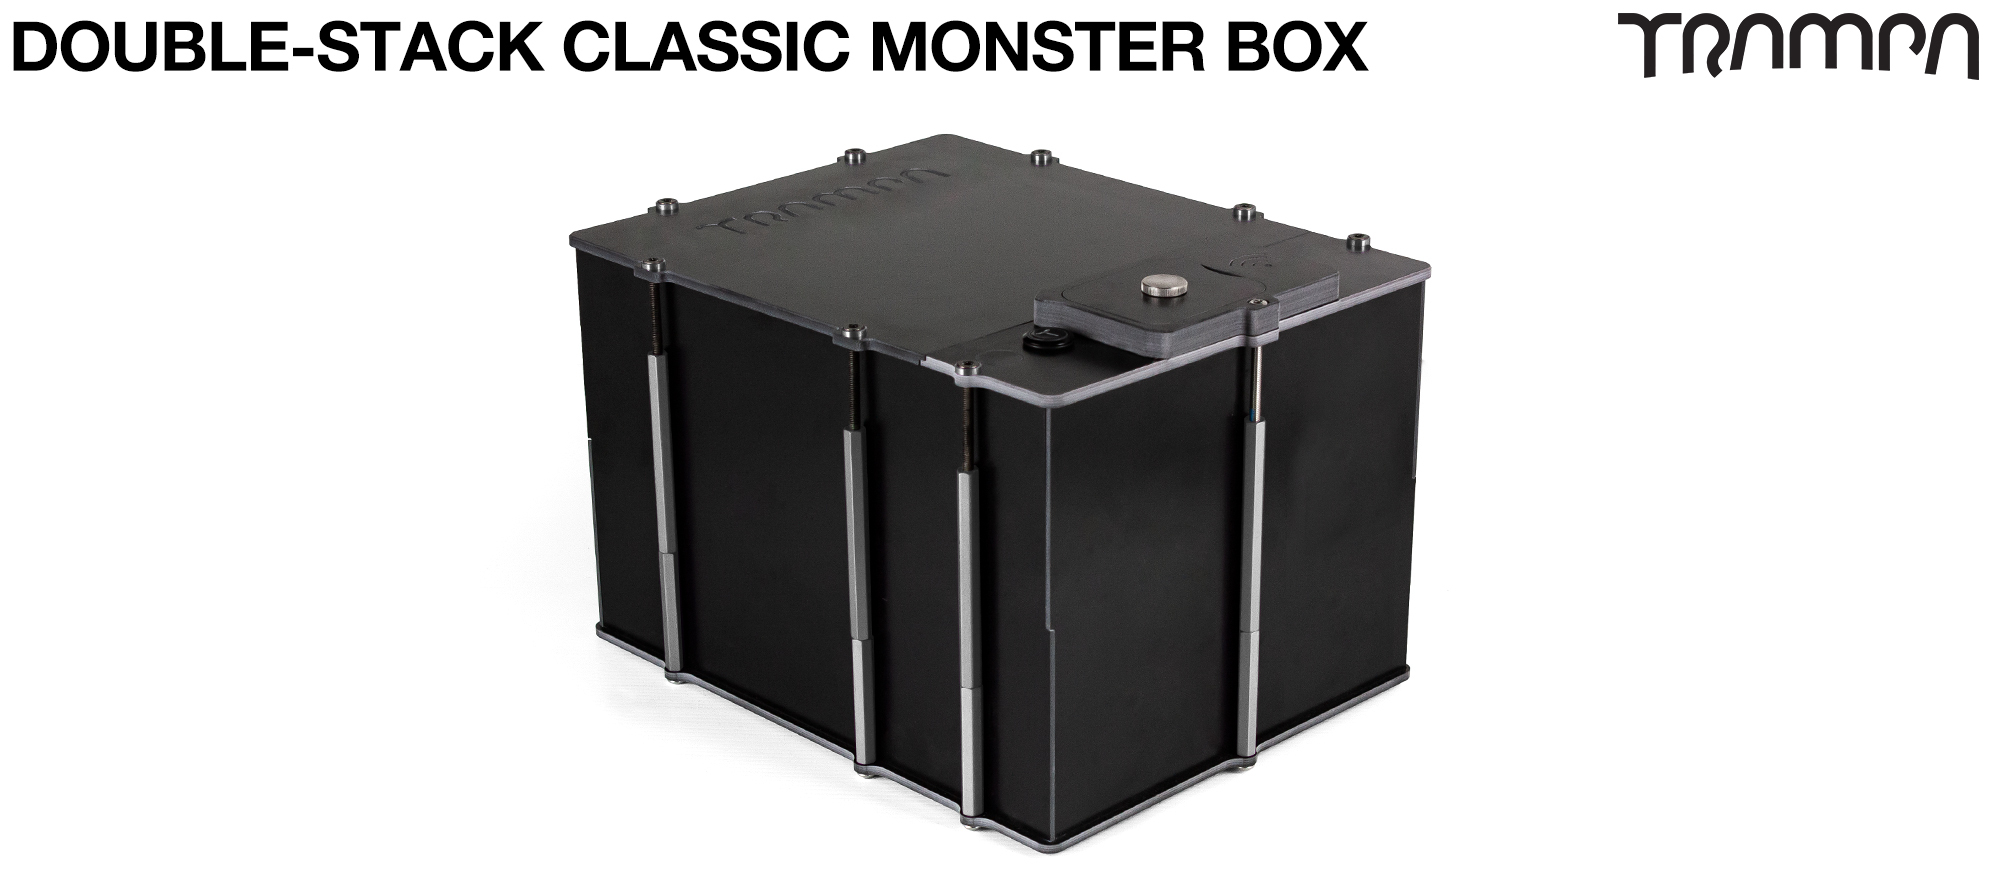 Classic MONSTER Box MkV DOUBLE STACKER - with NO VESC MOUNTING Panel fits 84x 18650 cells to give 12s7p 21A or 2x22000 mAh Lipos & has Panels to fit any of the TRAMPA VESC Speed controllers,